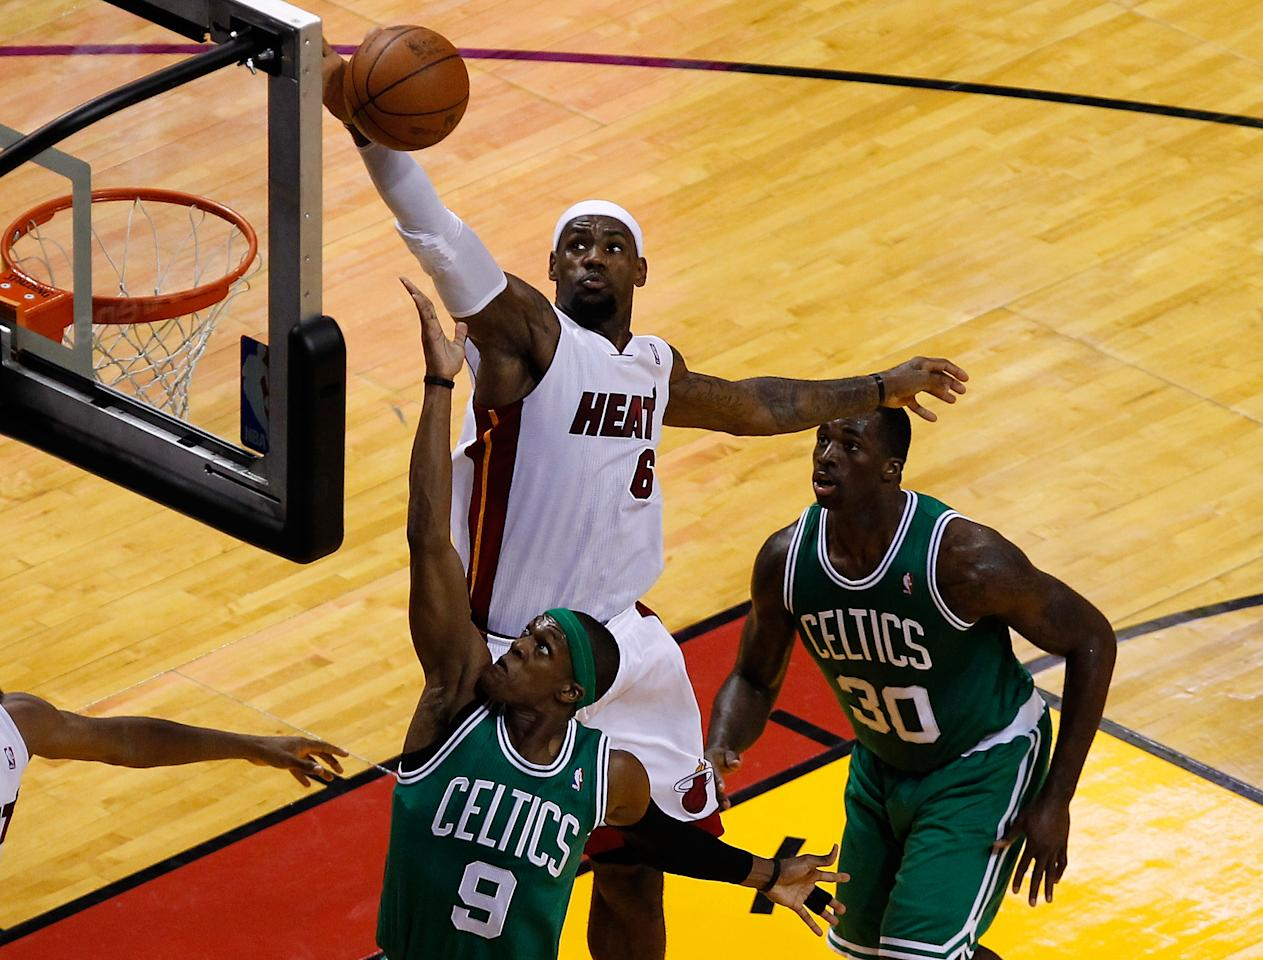 MIAMI, FL - JUNE 09:  LeBron James #6 of the Miami Heat blocks the shot of Rajon Rondo #9 of the Boston Celtics in the first half in Game Seven of the Eastern Conference Finals in the 2012 NBA Playoffs on June 9, 2012 at American Airlines Arena in Miami, Florida. NOTE TO USER: User expressly acknowledges and agrees that, by downloading and or using this photograph, User is consenting to the terms and conditions of the Getty Images License Agreement.  (Photo by J. Meric/Getty Images)